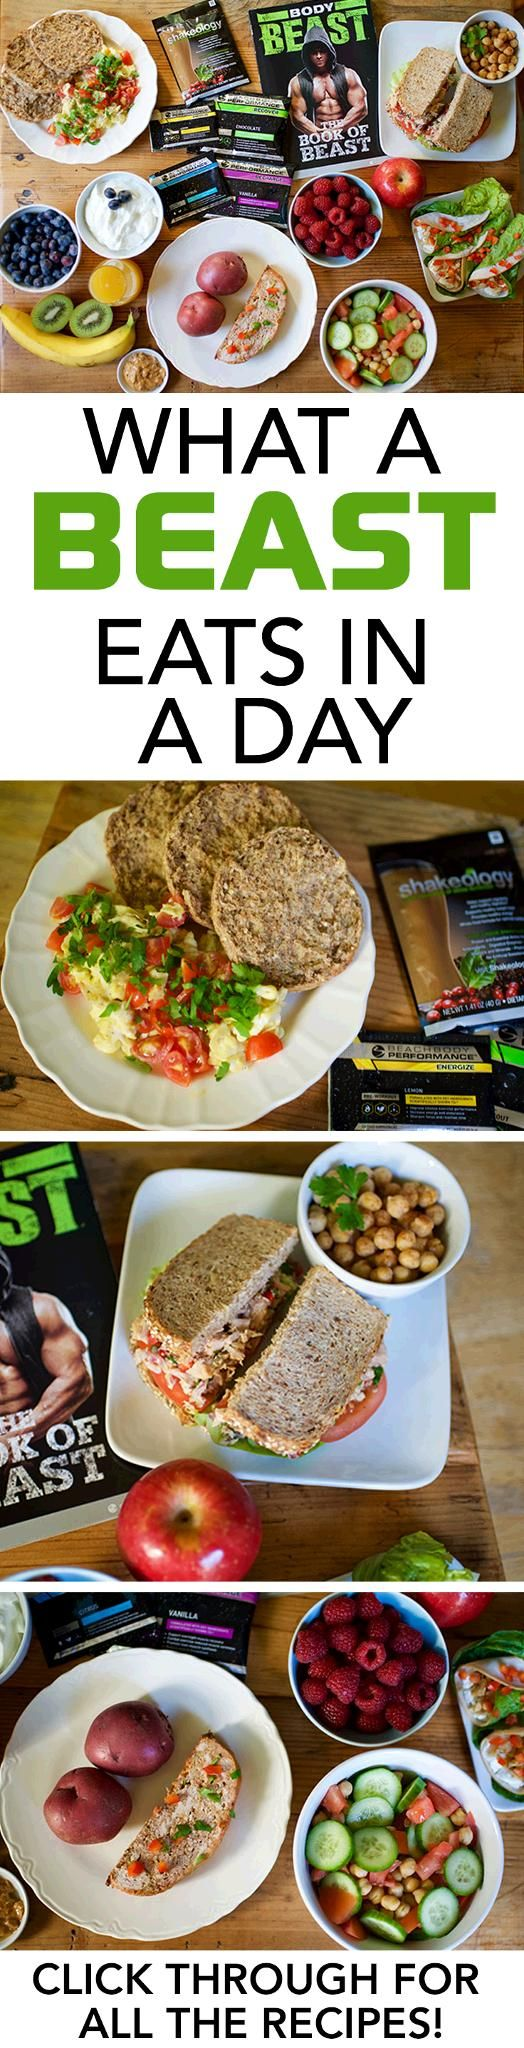 You might know what it takes to train like a Beast, but do you know how to eat like a Beast? Click through to see what a sample day of meals looks like during the bulk phase of Body Beast. // recipes // nutrition // fit fam // muscle building // gains // meal prep // beachbody // beachbody blog